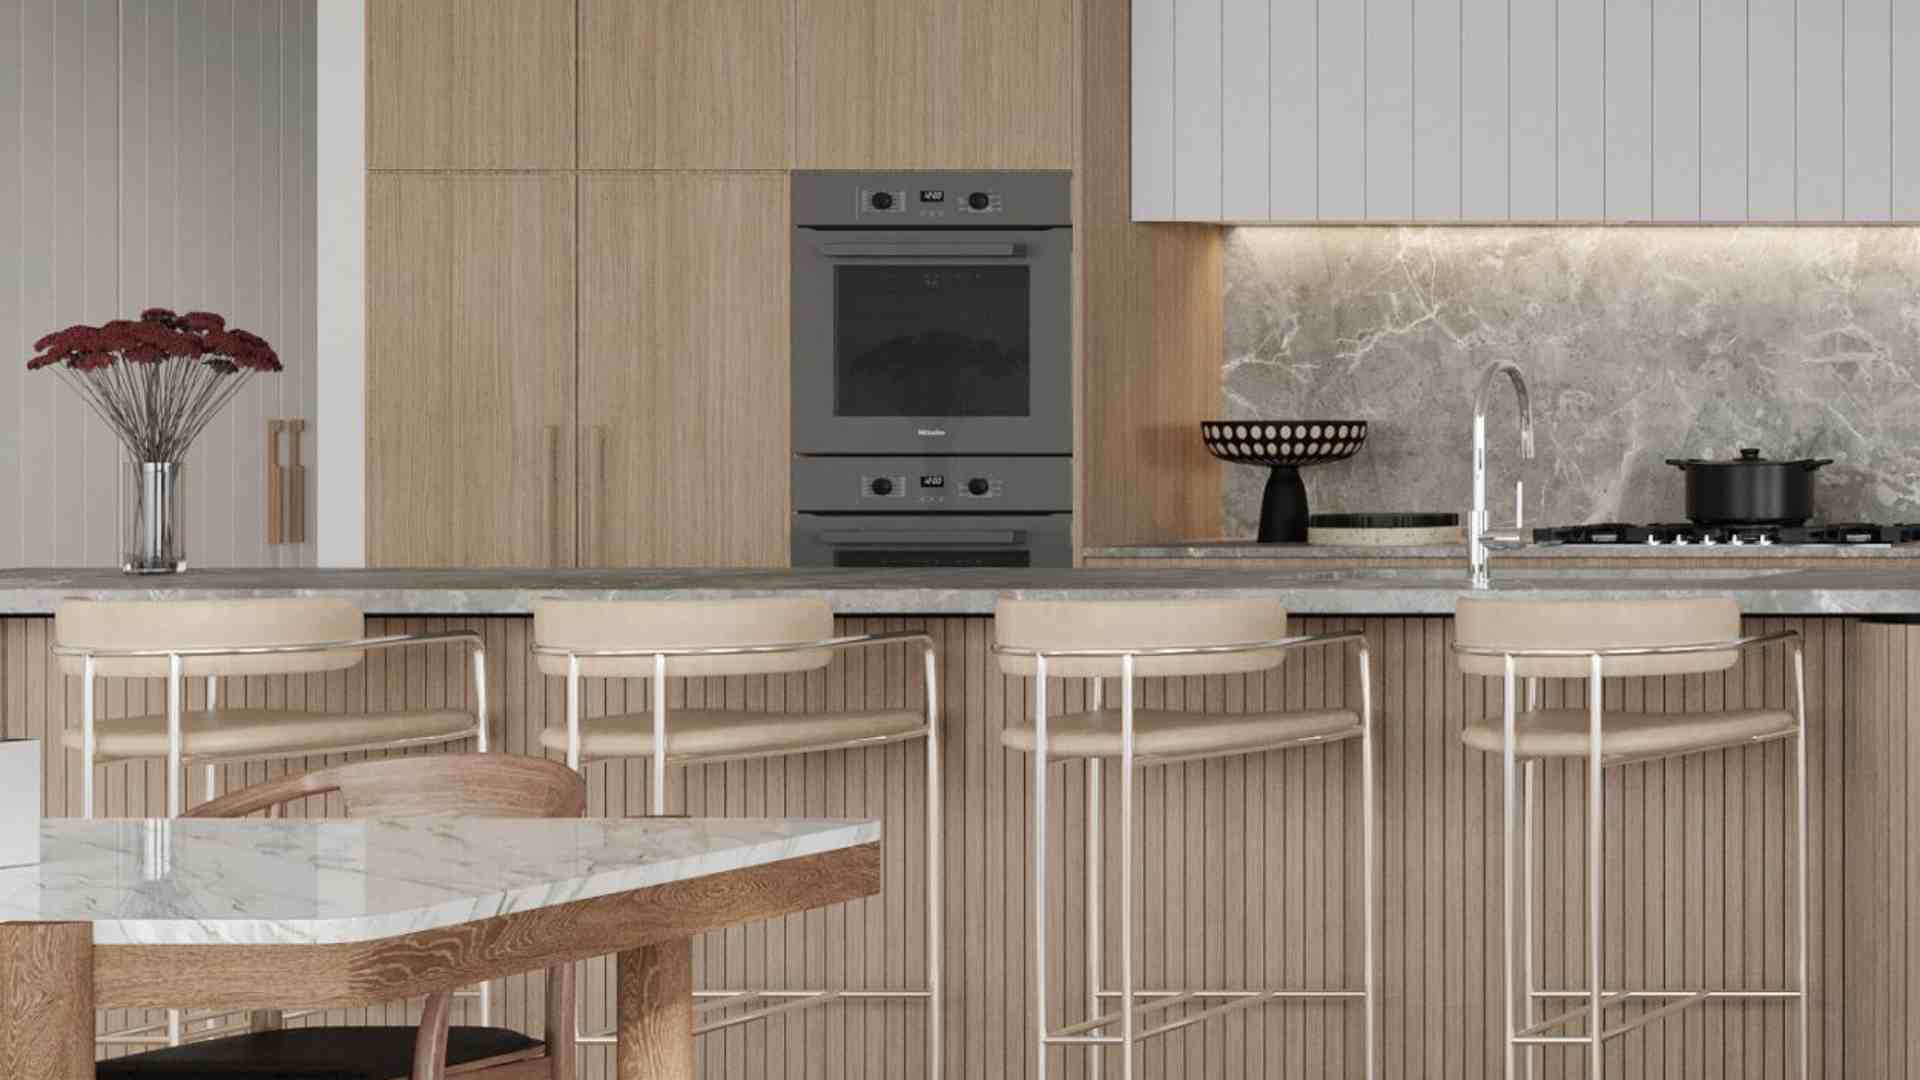 black cast iron pot on stove, grey counter top with wooden kitchen cabinets